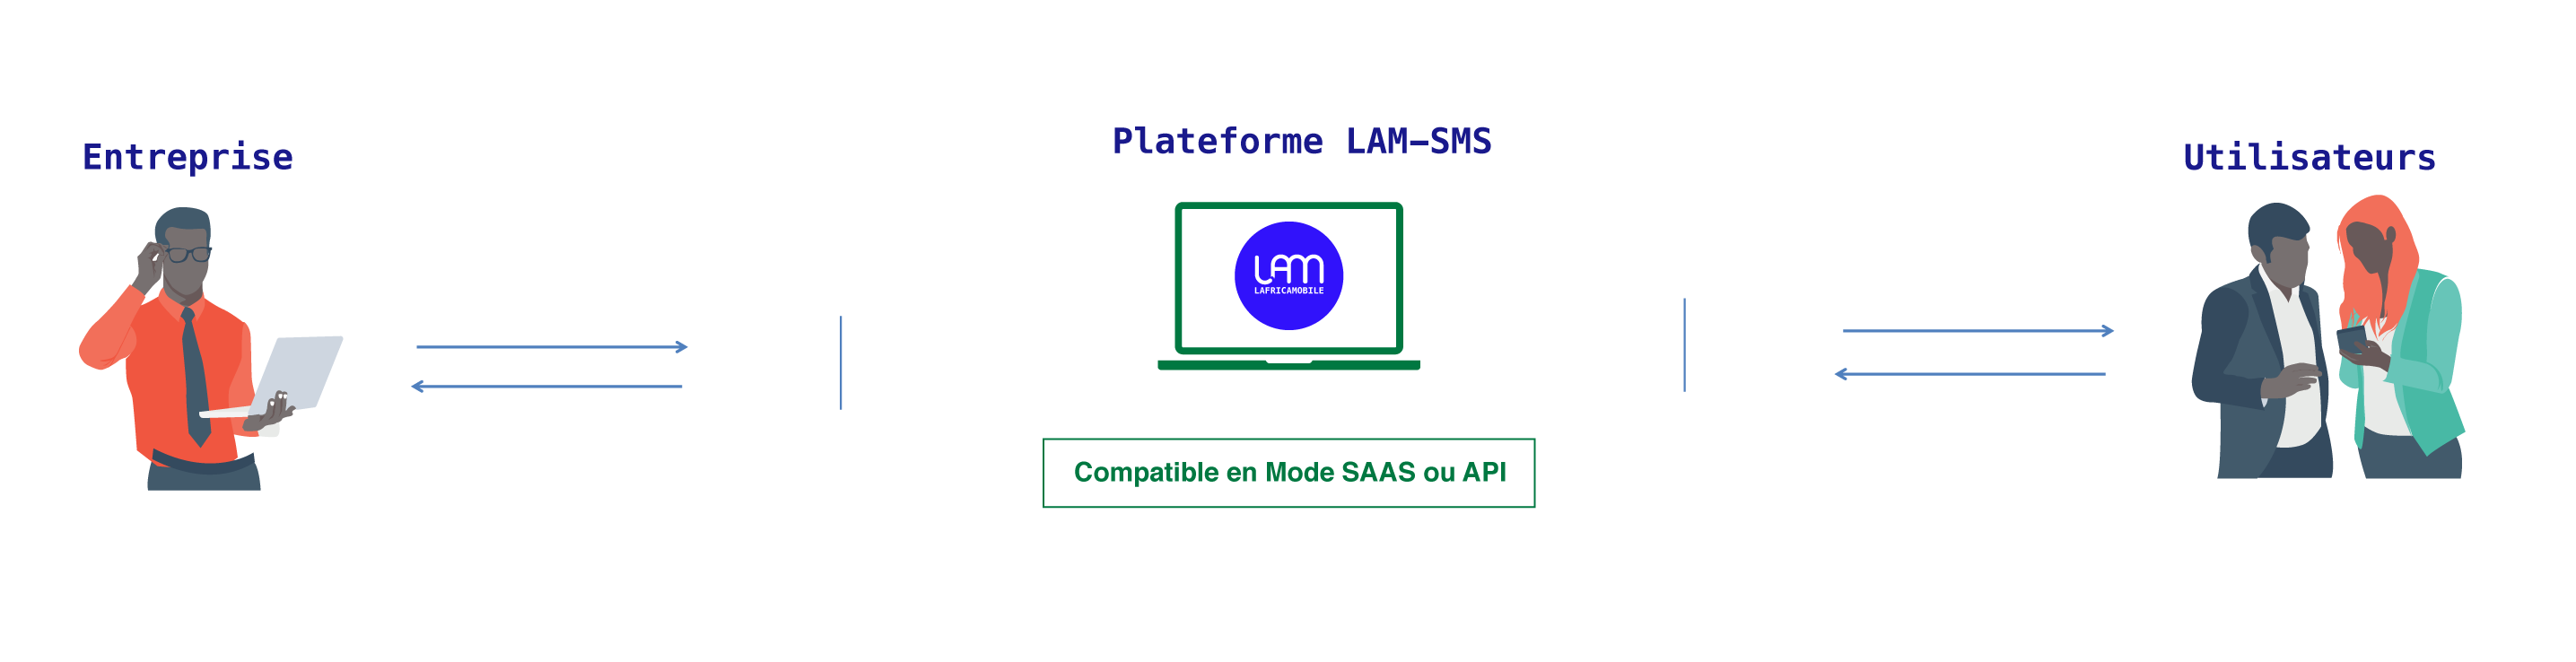 //lafricamobile.com/wp-content/uploads/2021/06/sms-howto.png